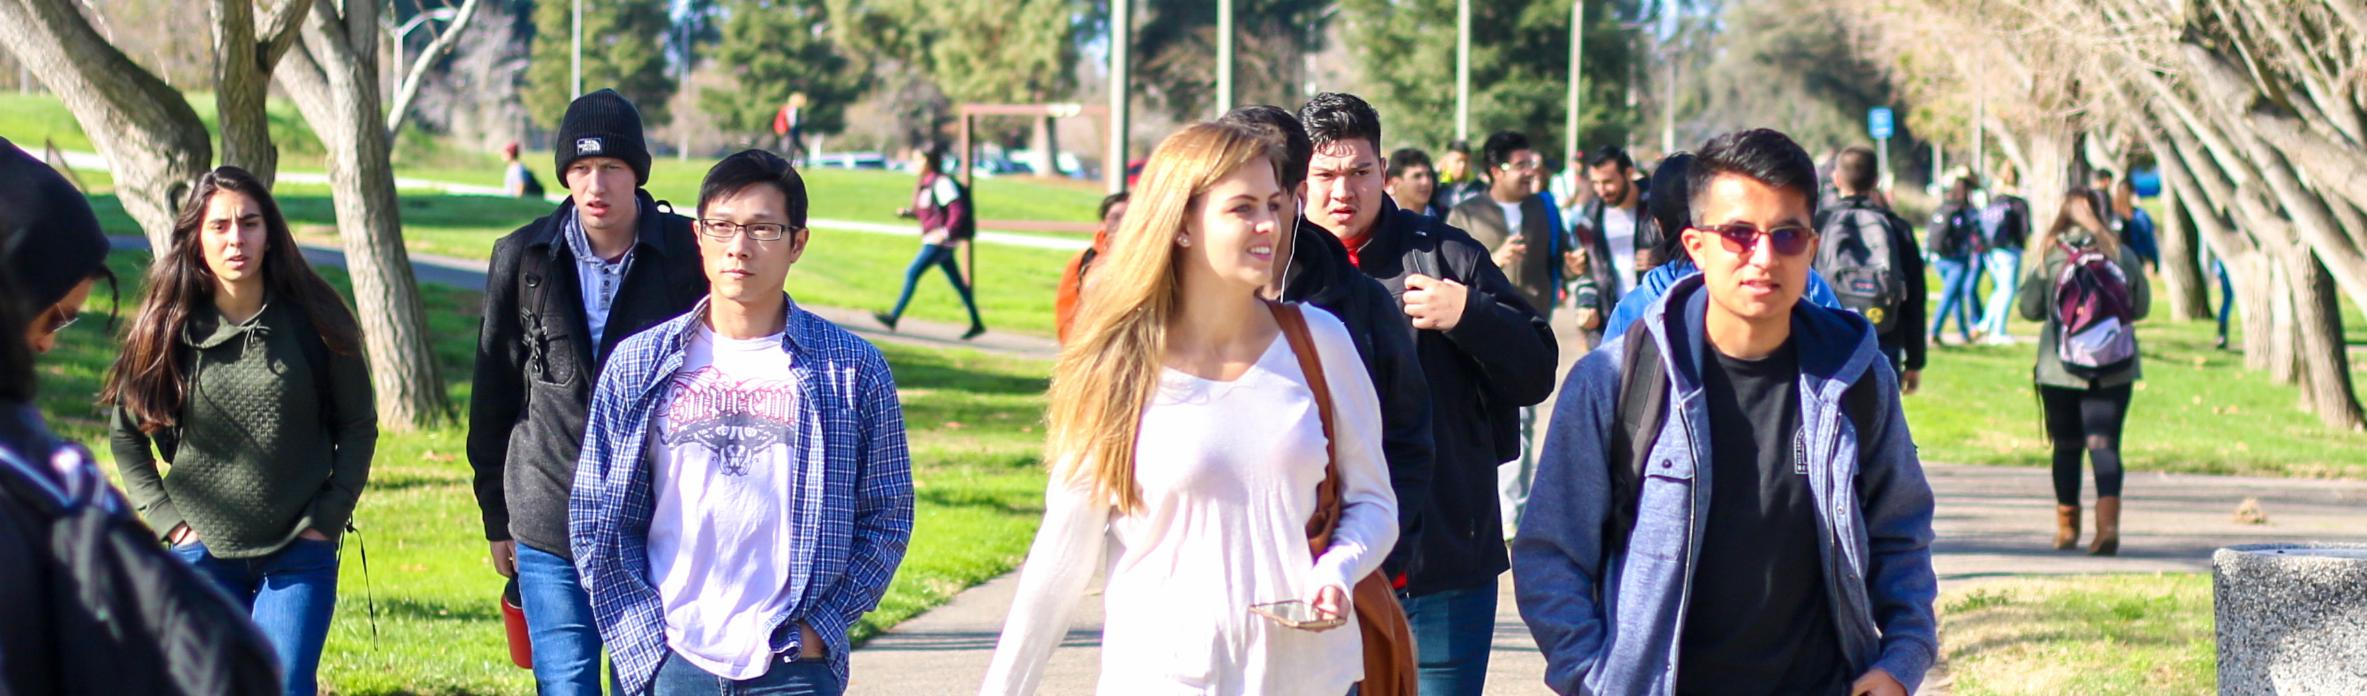 Students walking along pathway on campus